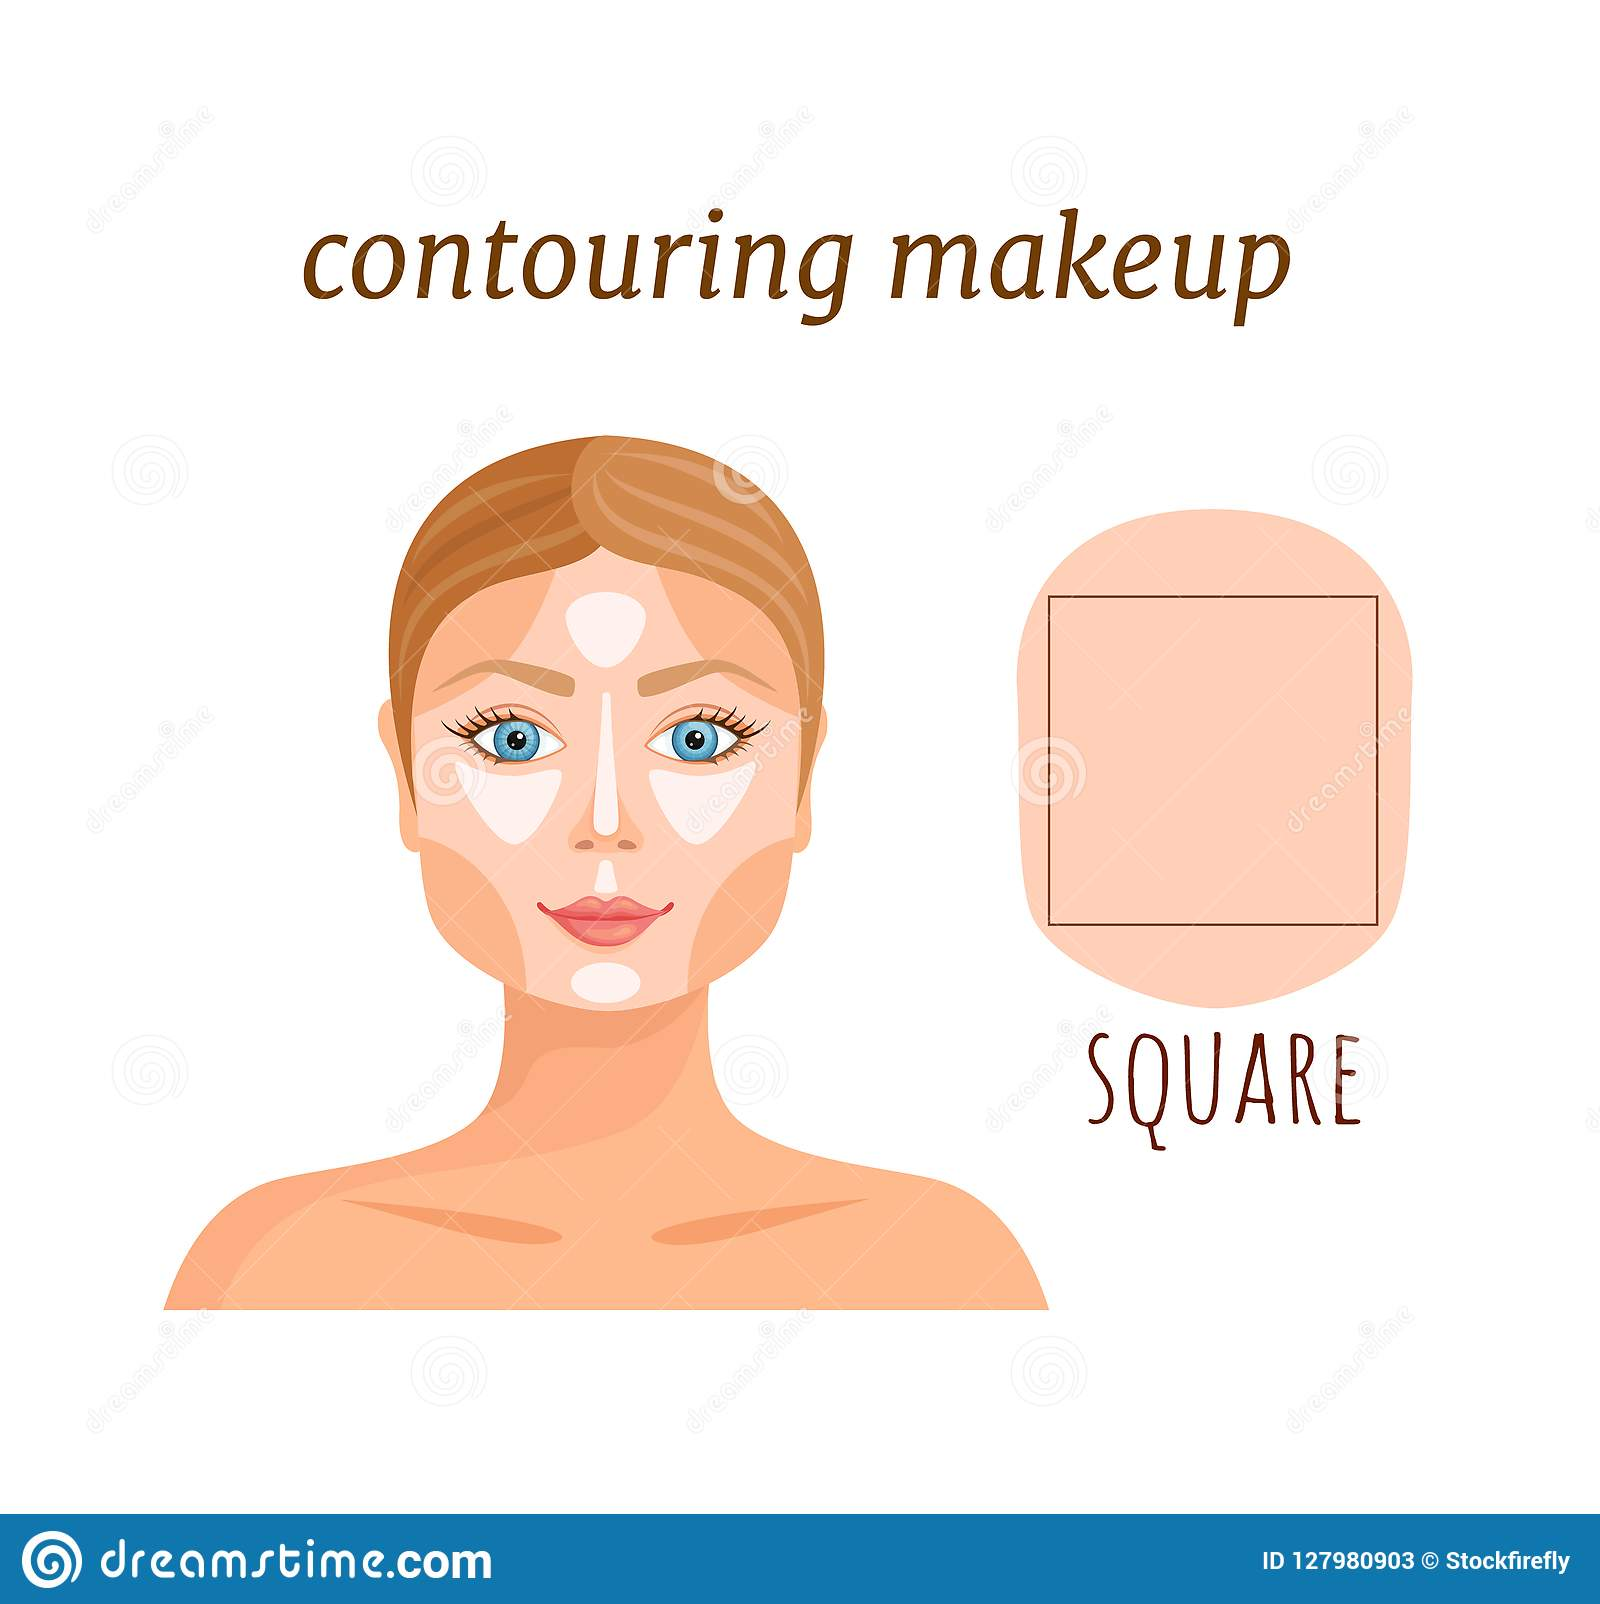 Contouring Guide For A Square Face. Vector. Stock Vector